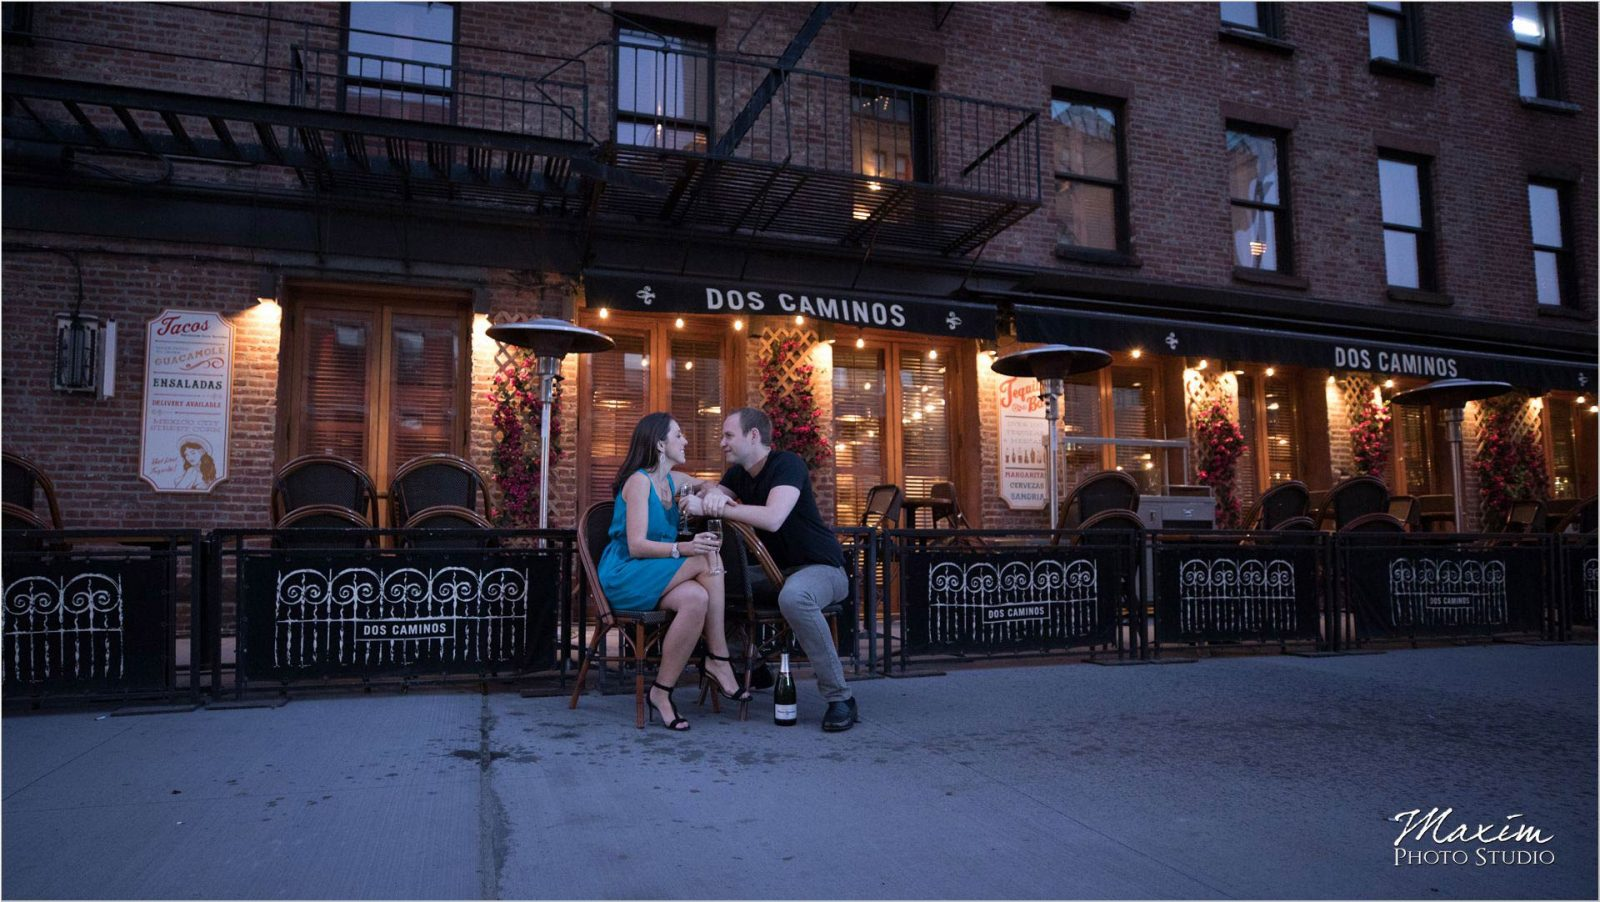 New York City Meatpacking District Dos Caminos Engagement